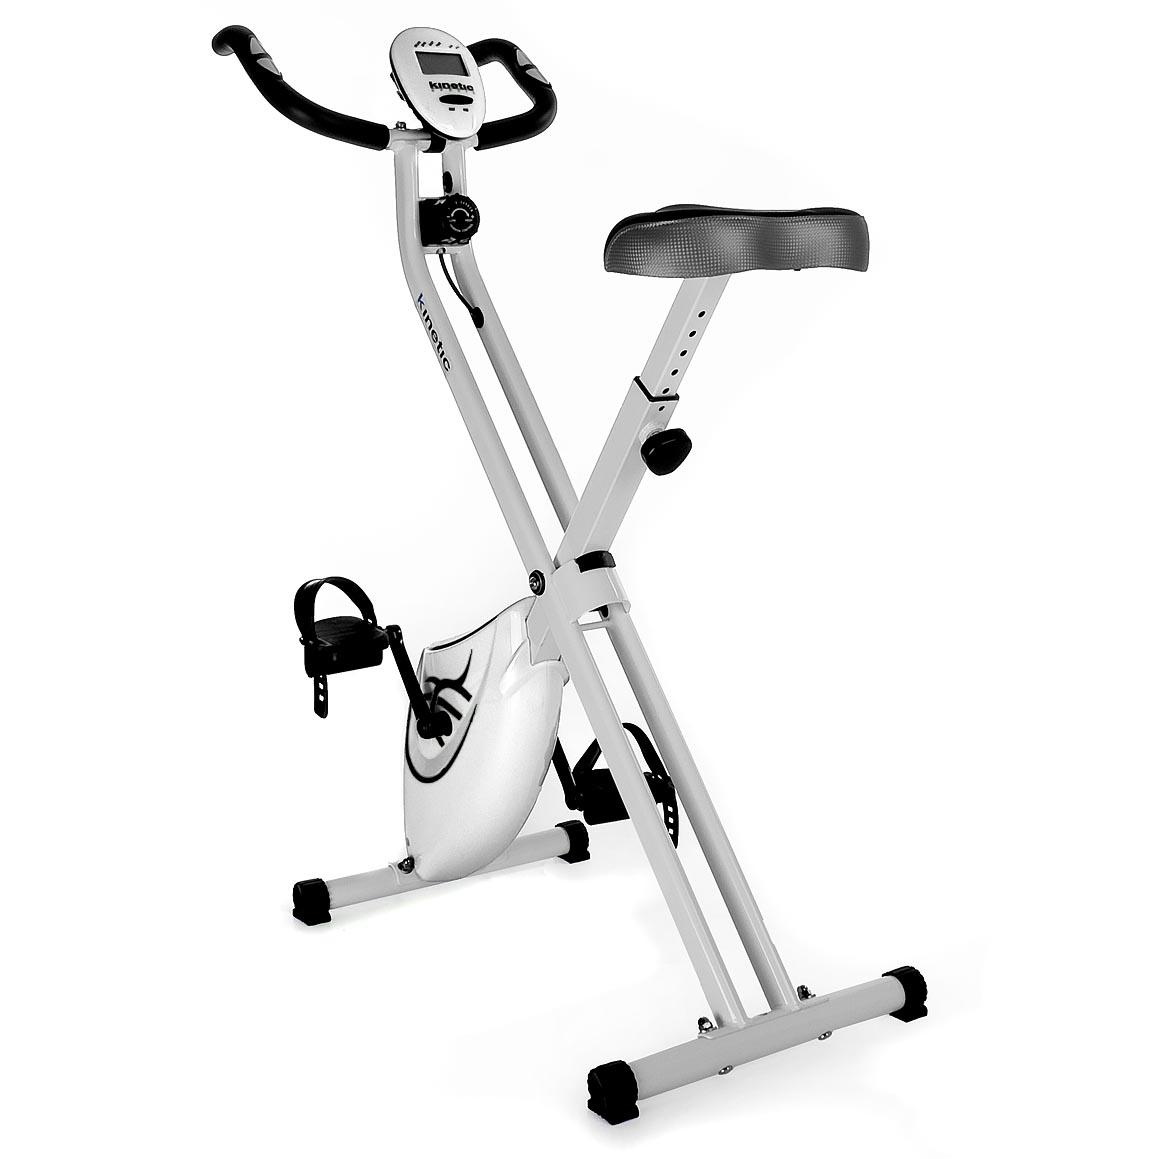 velo d 39 appartement pliable ergometre compteur basic fitness cardio blanc ebay. Black Bedroom Furniture Sets. Home Design Ideas